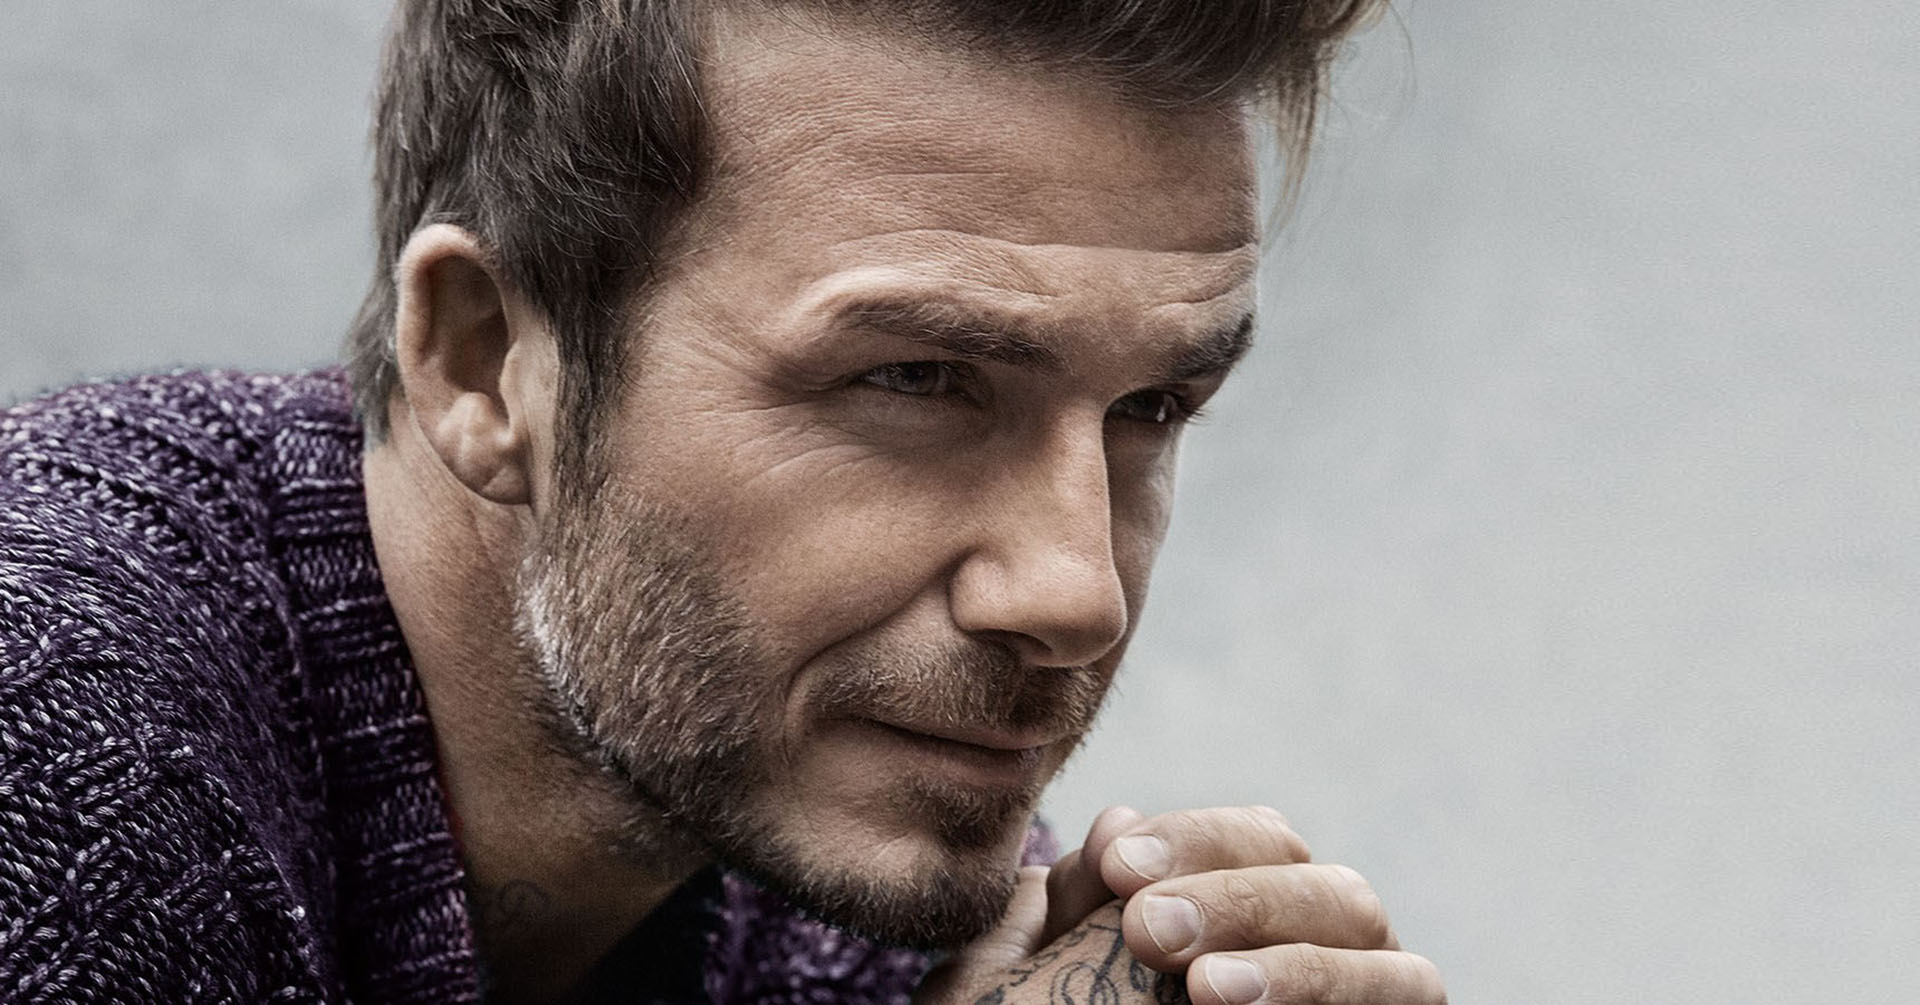 David Beckham Wallpapers With Quotes David Beckham Hd Images